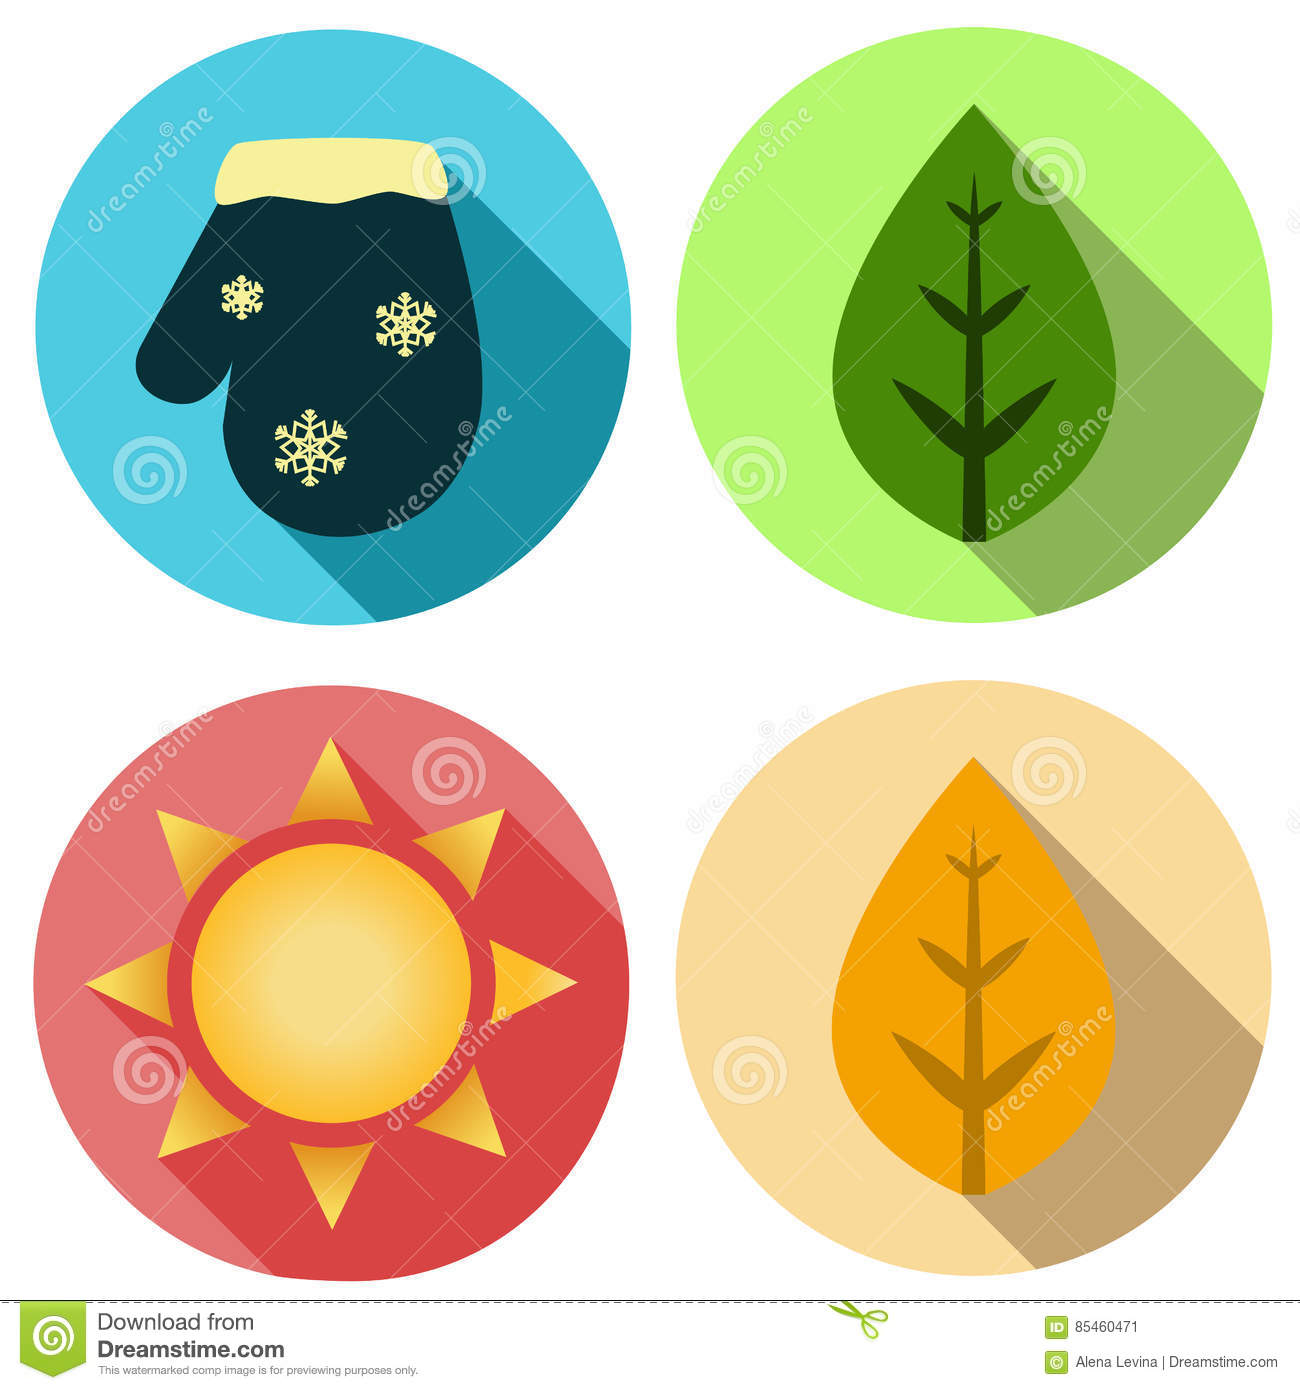 Four Seasons Icon Symbol Illustration Weather Forecast Stock